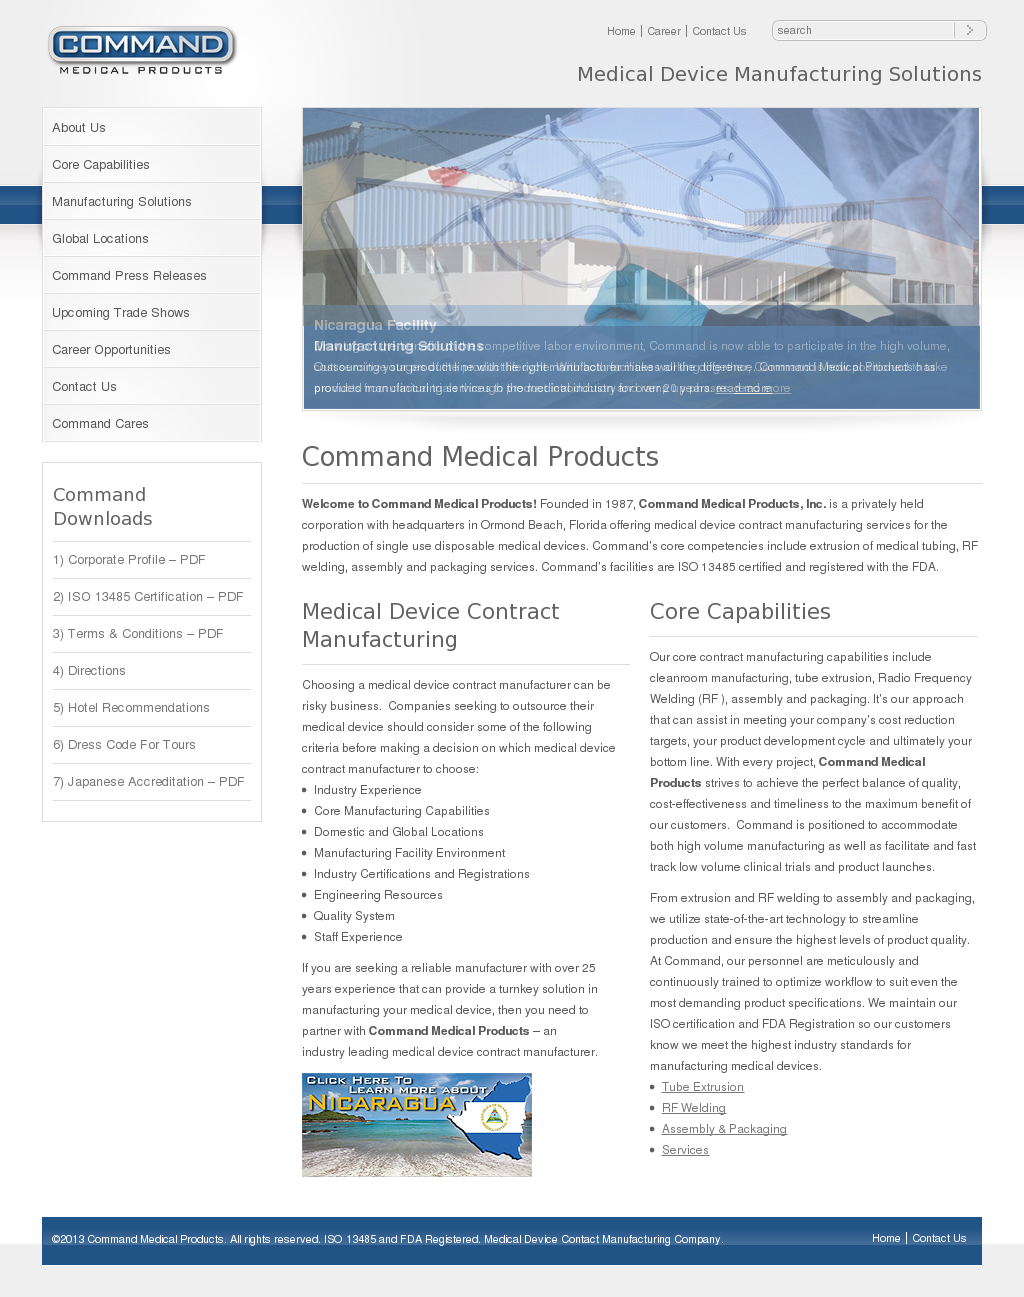 Command Medical Products Competitors, Revenue and Employees